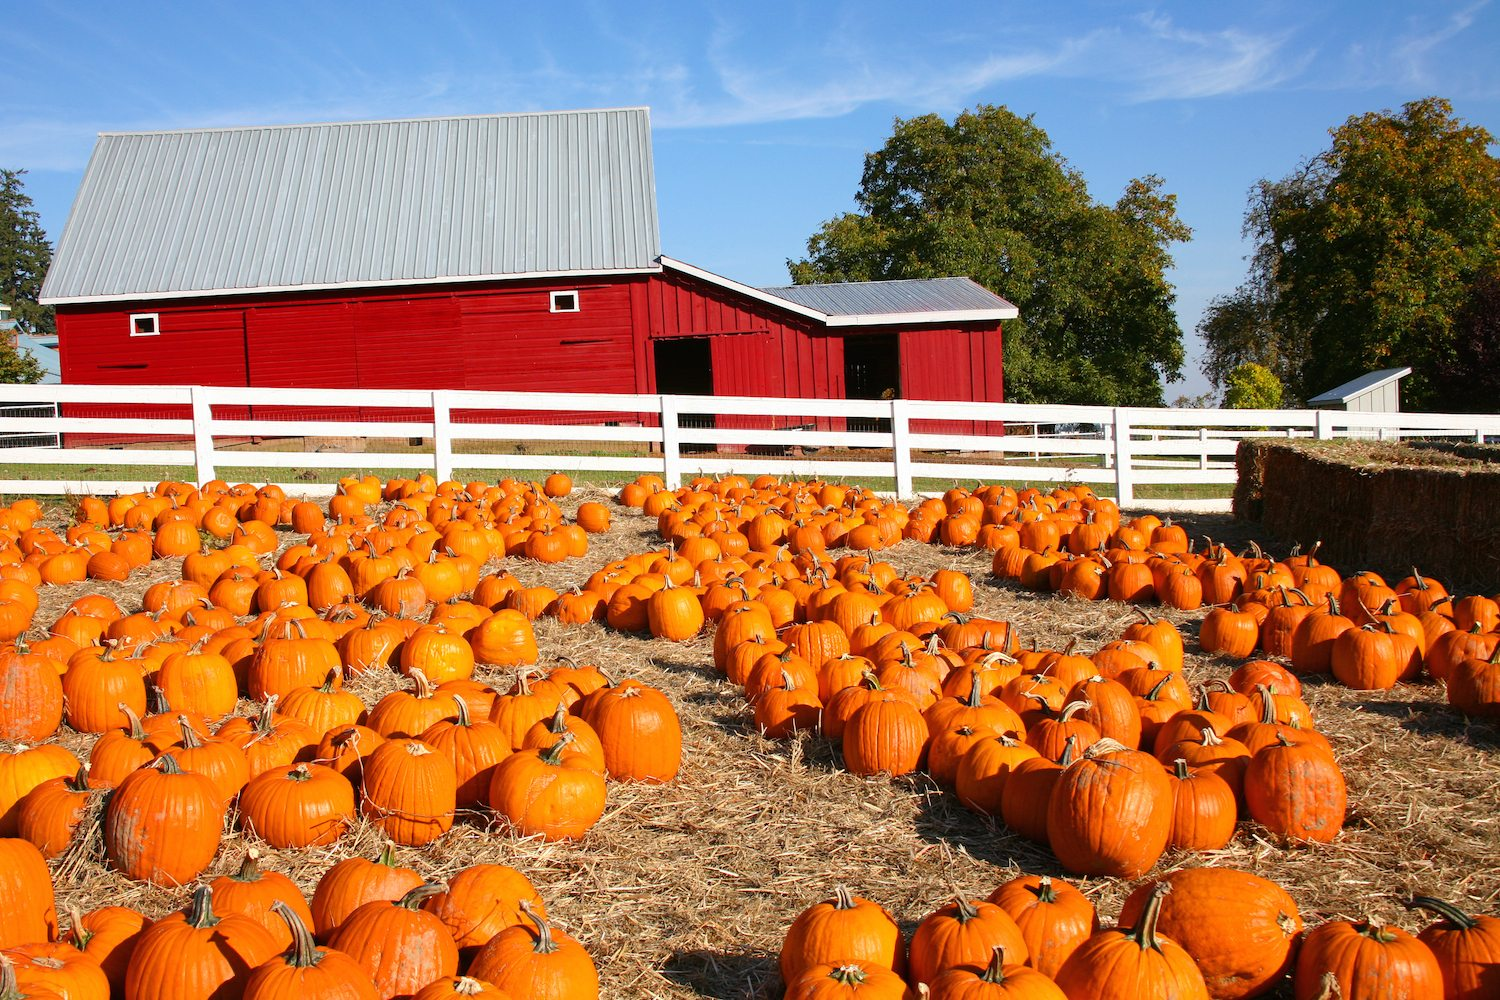 Largest Pumpkin Patches in the U.S.